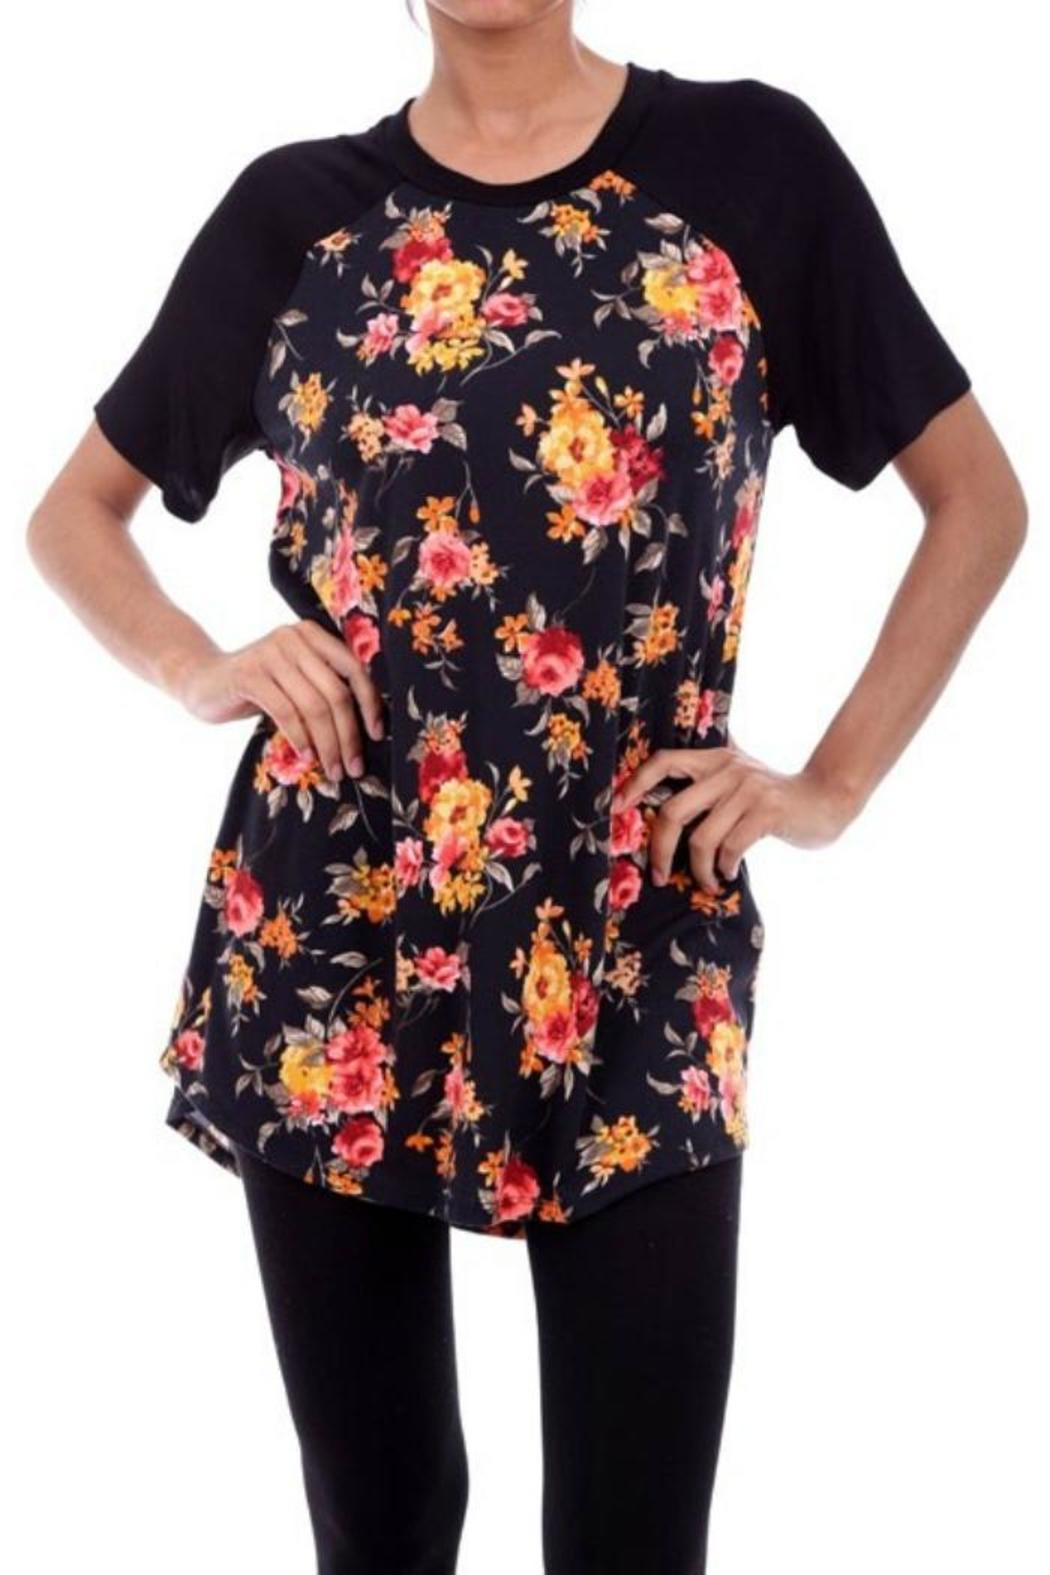 lilypad floral body top from texas by chili peppers shoptiques. Black Bedroom Furniture Sets. Home Design Ideas